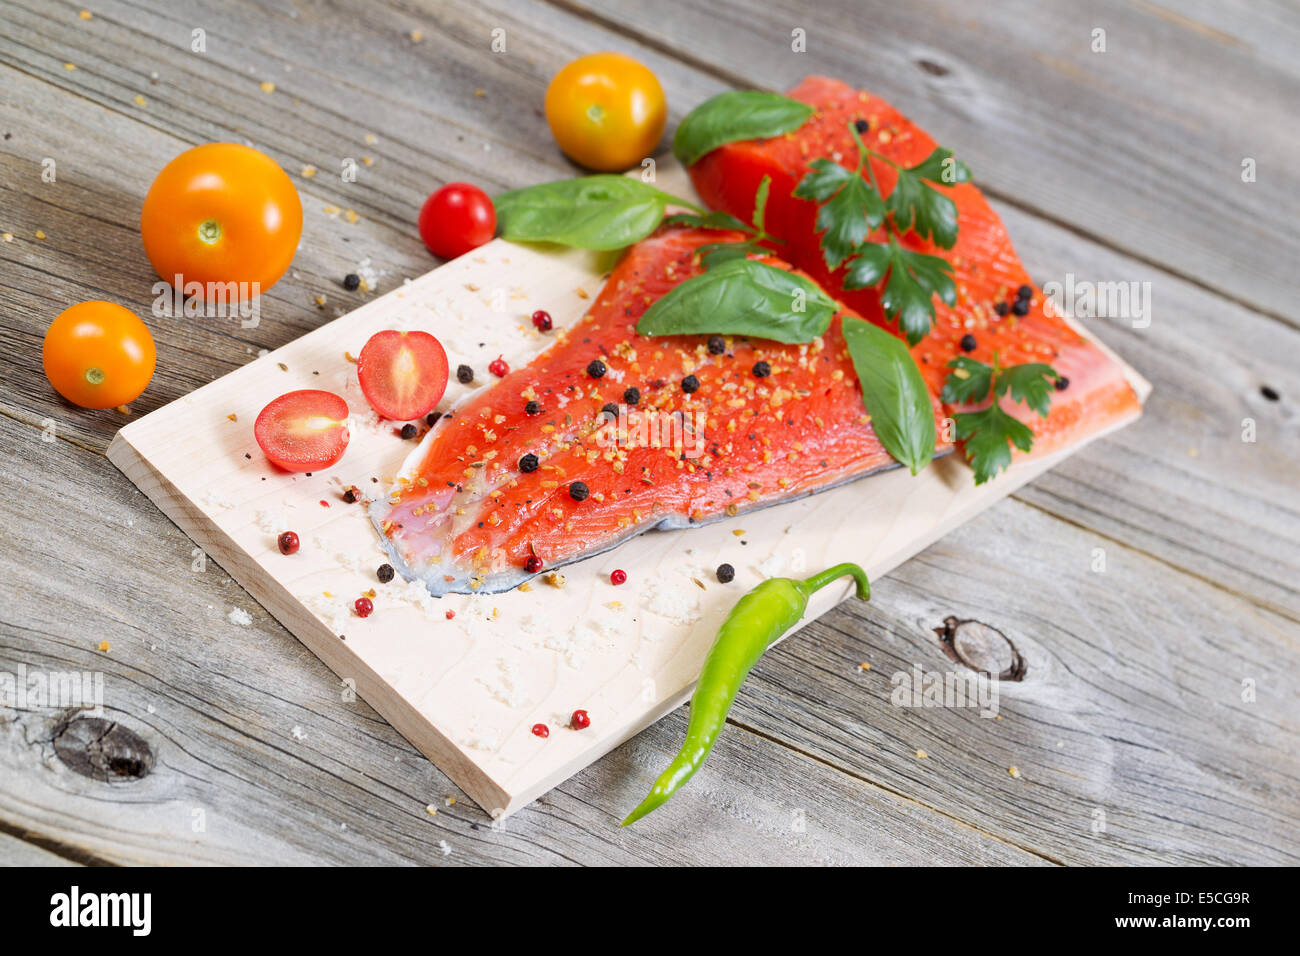 Angled horizontal view of raw red salmon, skin side down, on maple wood grilling plank with seasoning and other - Stock Image